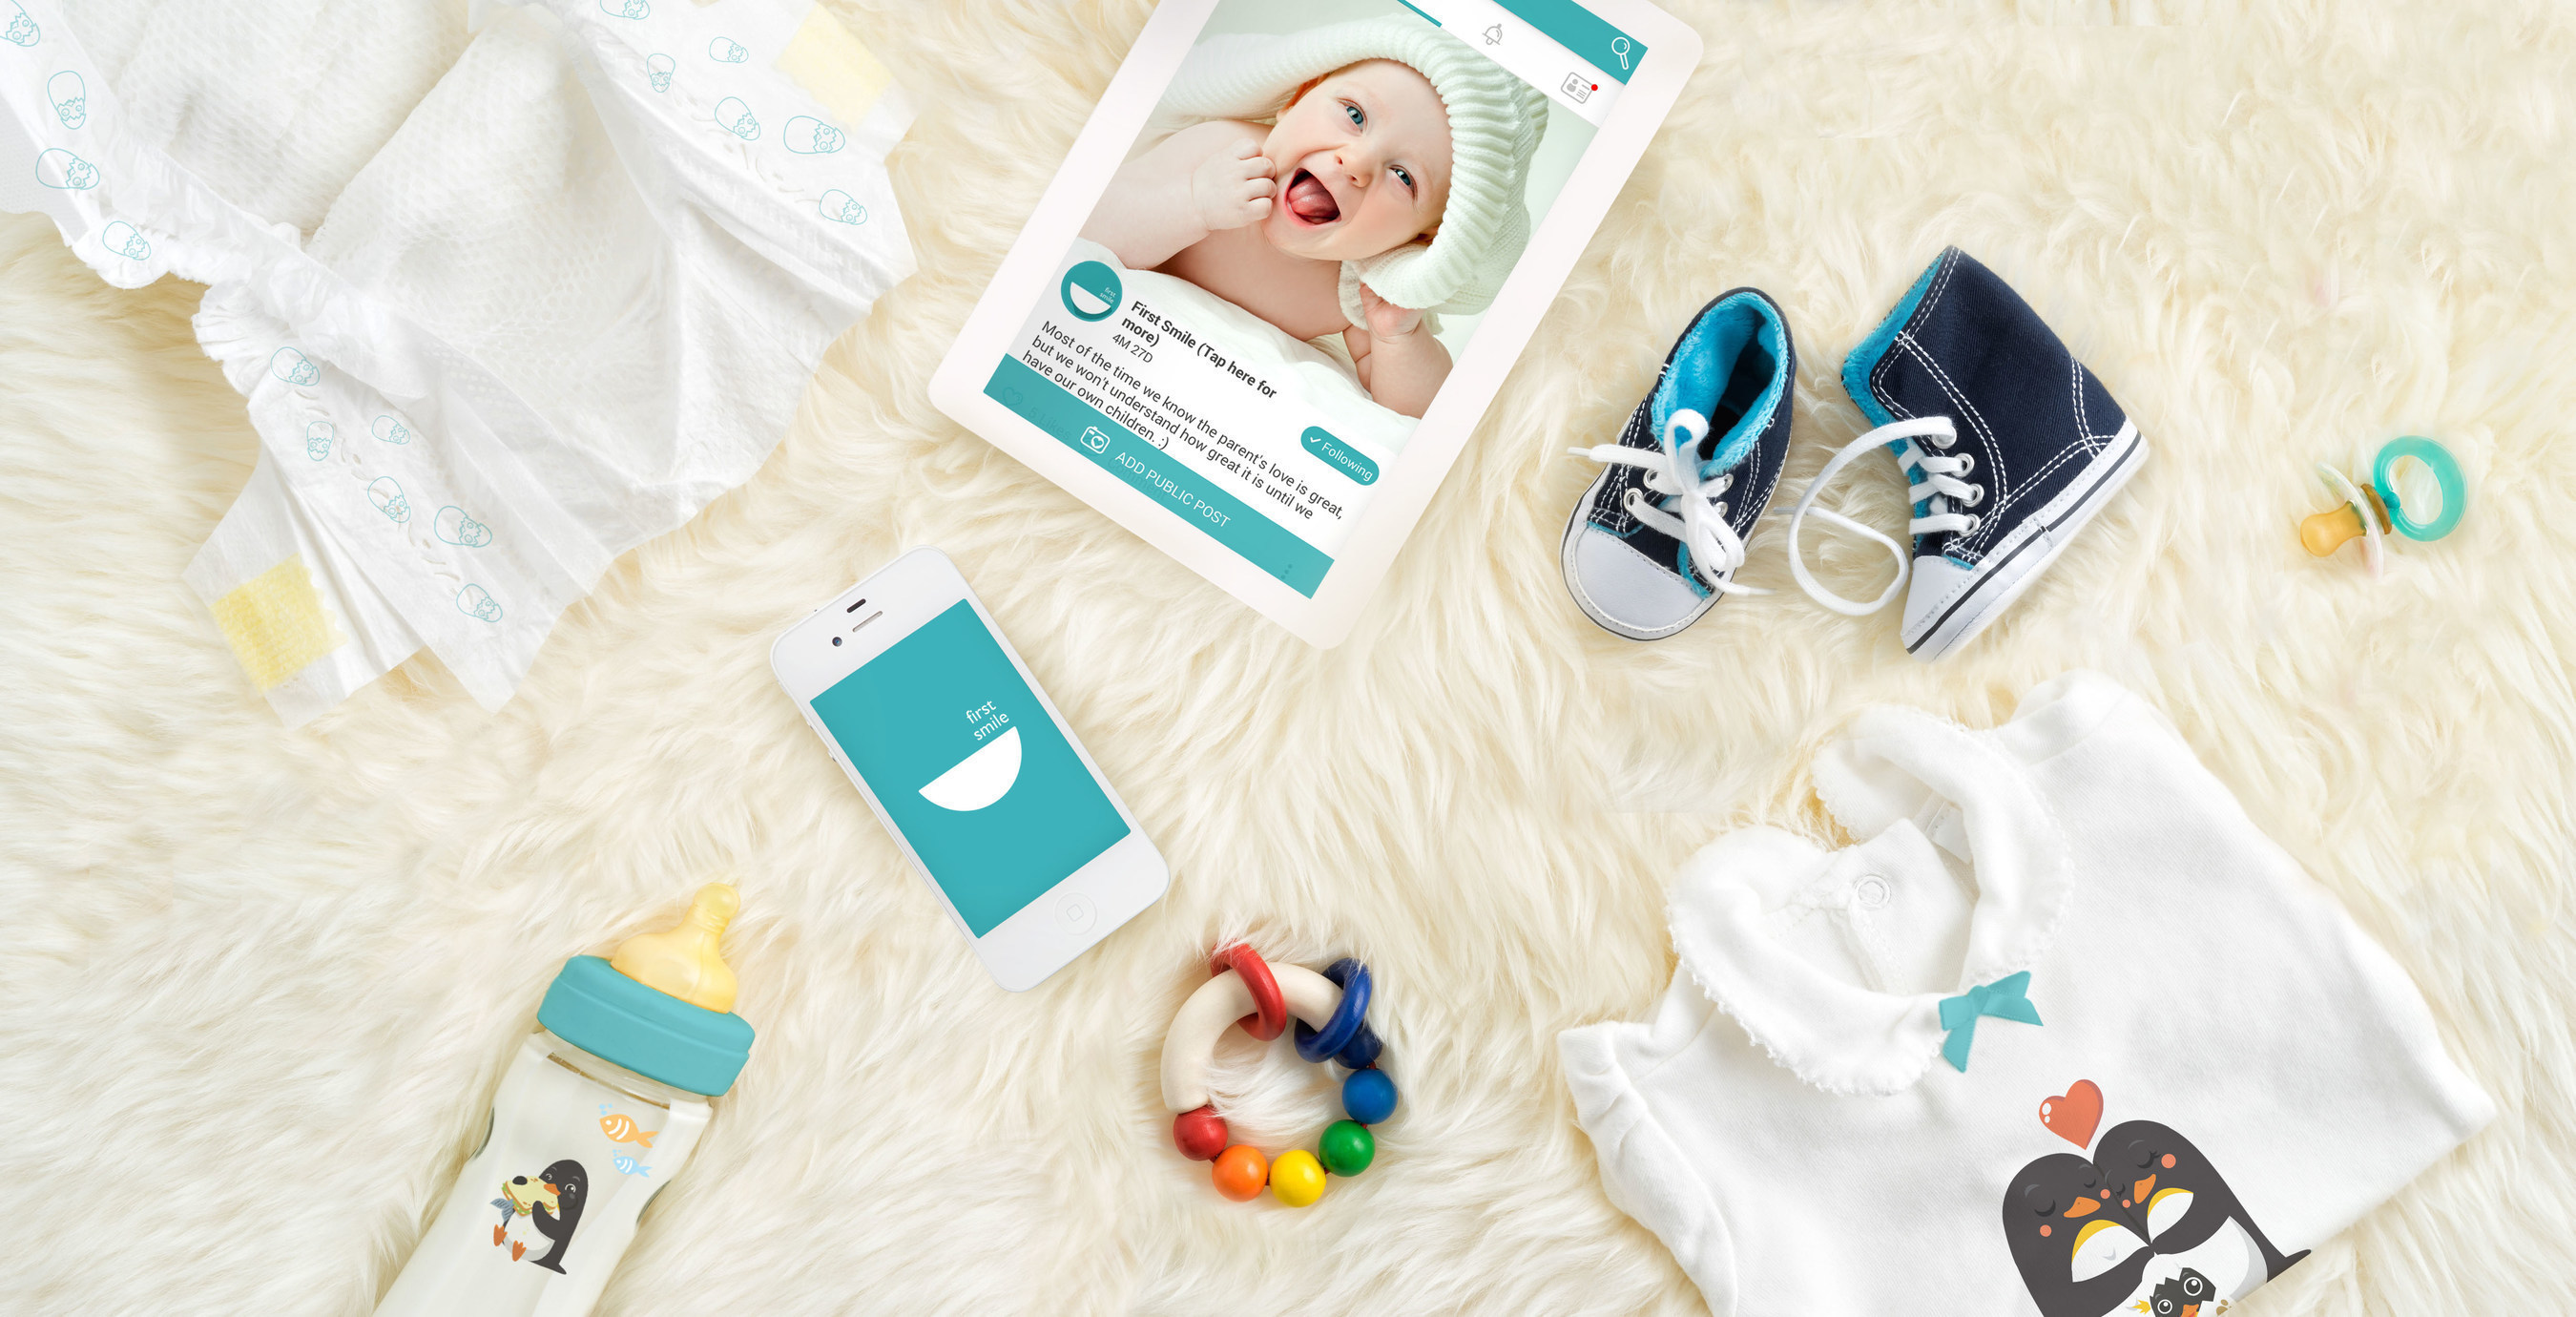 Preserving Memories with First Smile App